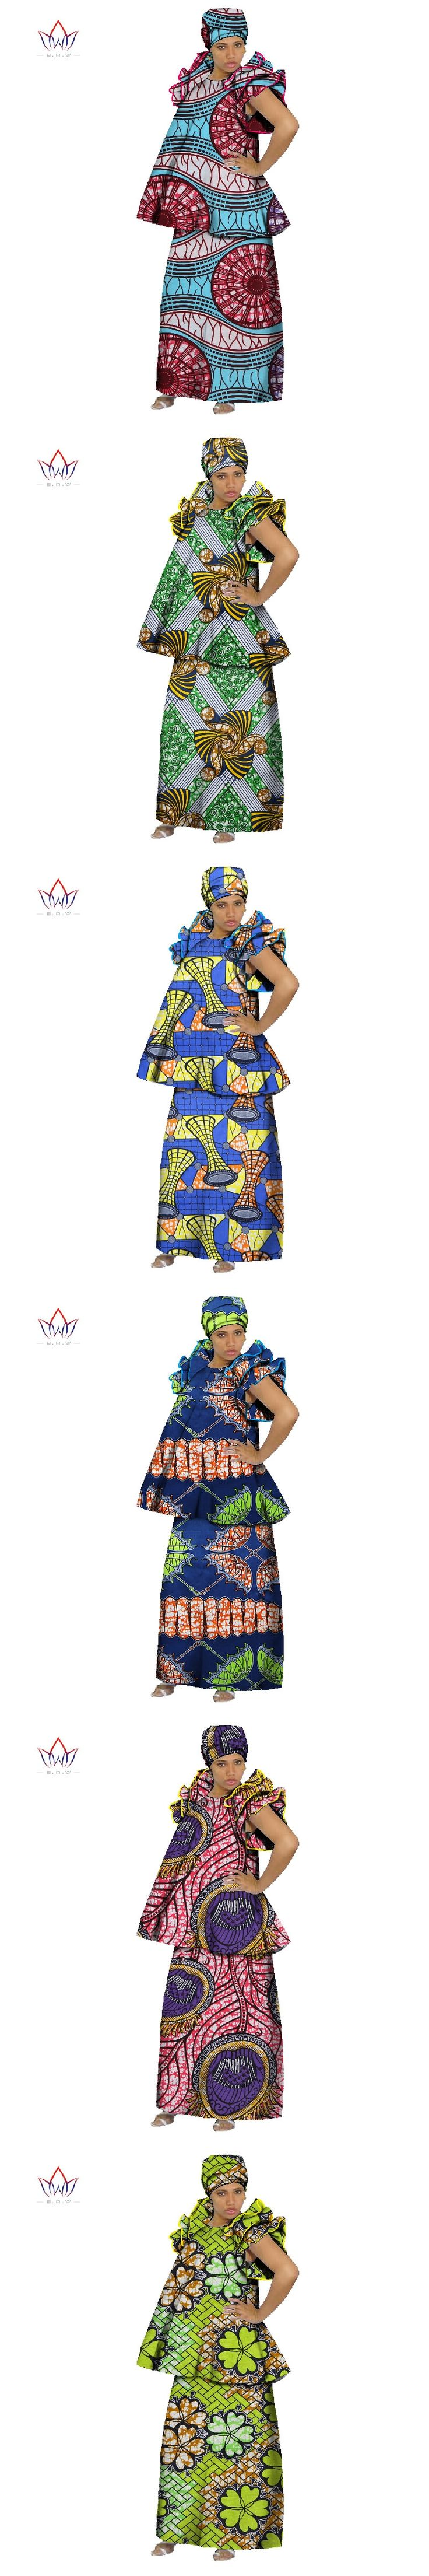 BRW 2017 African Skirt Sets for Women Dashiki elegant africa clothing Crop Top and Skirt Sets Traditional African Clothing WY073